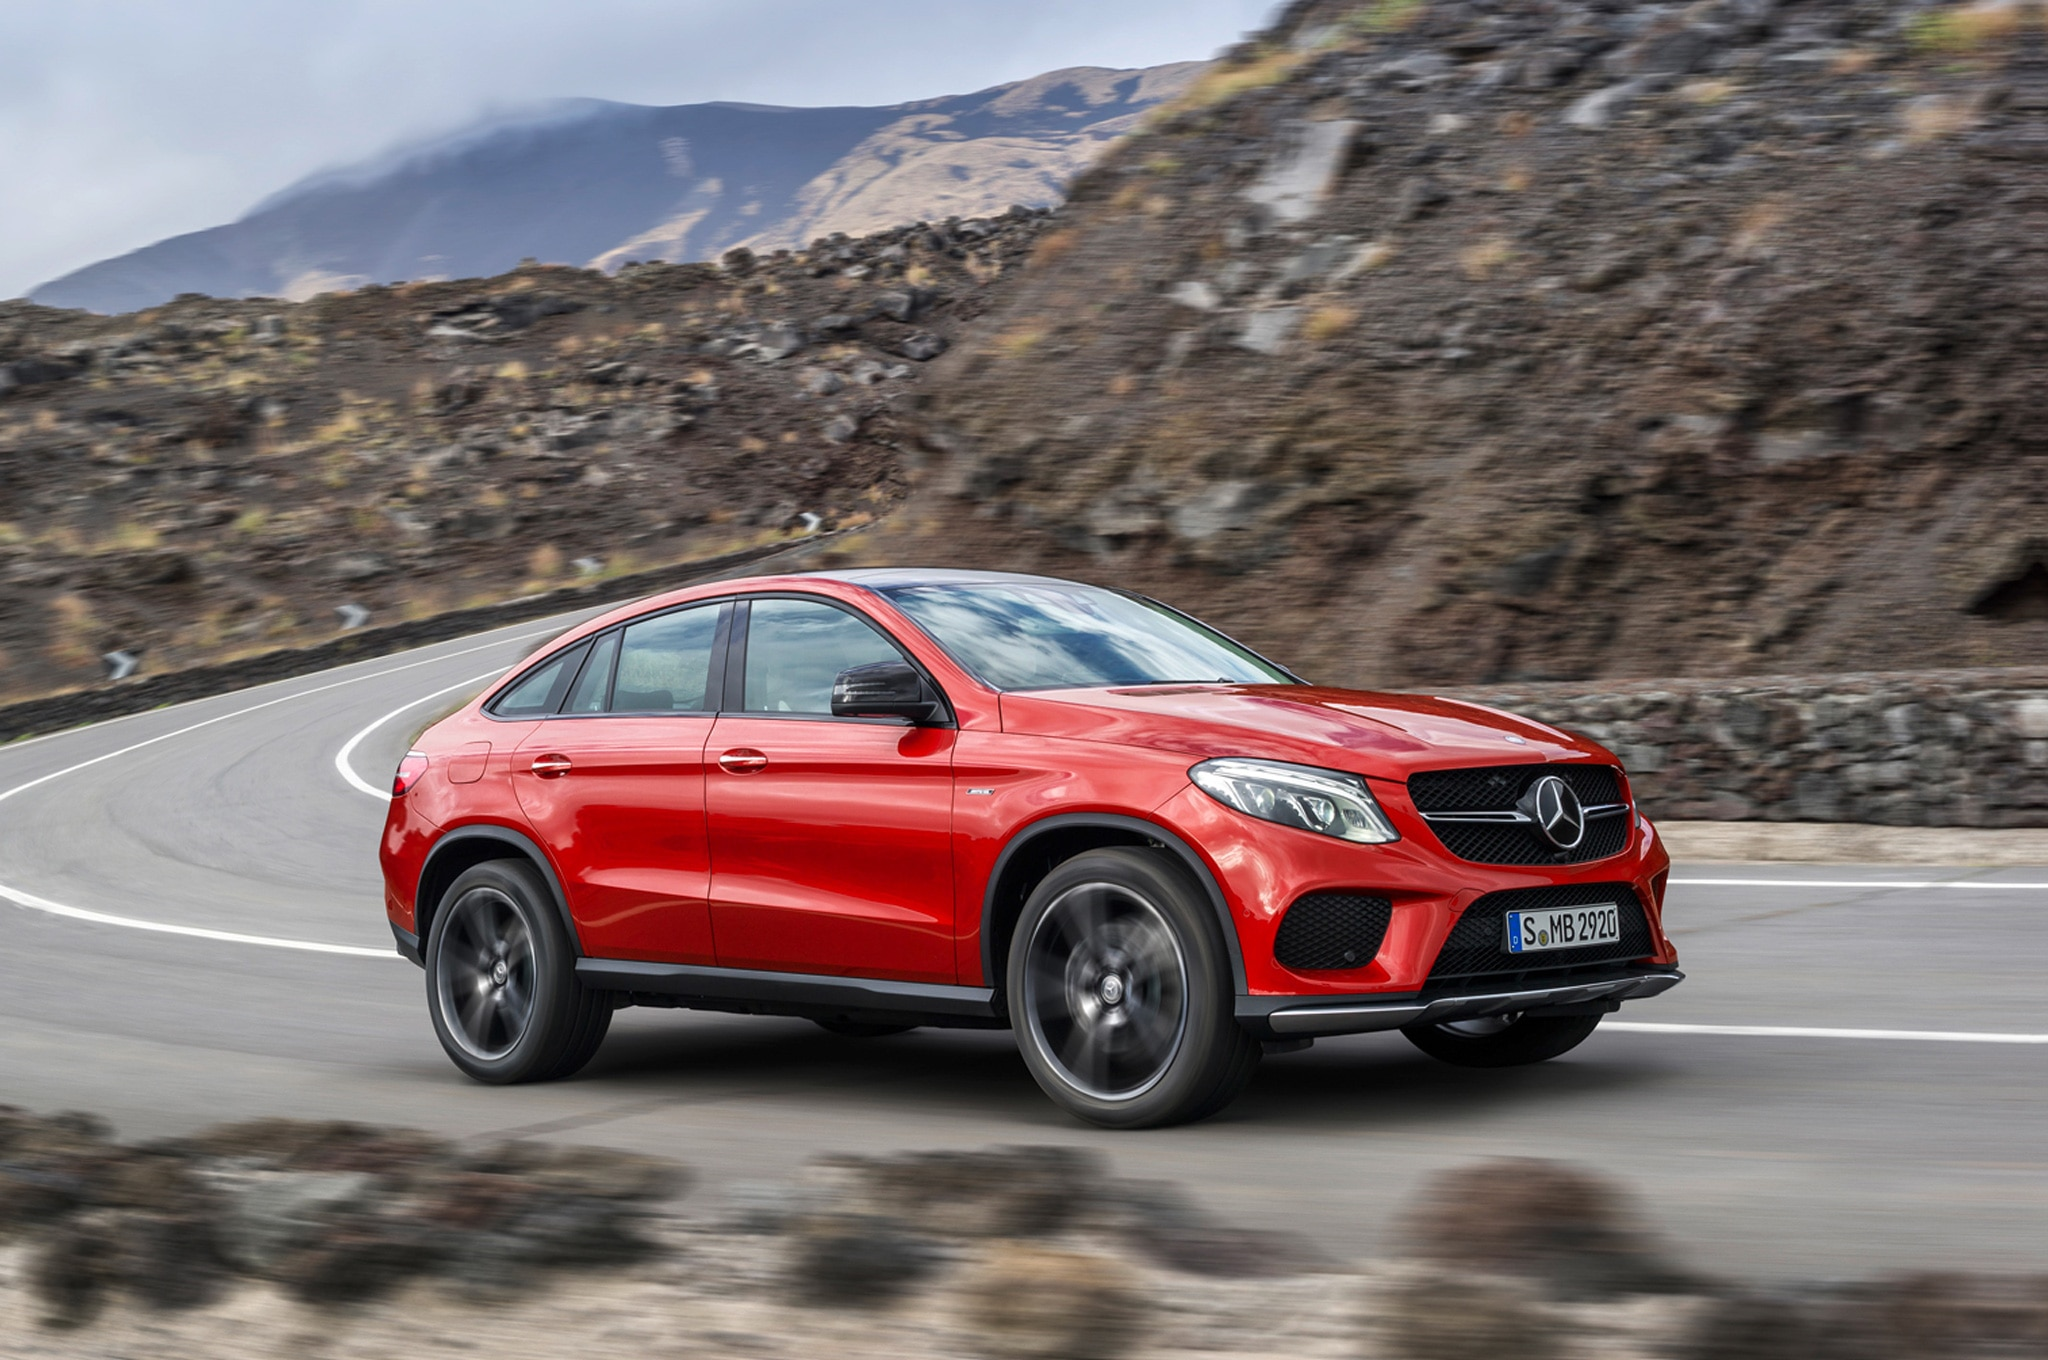 2016 Mercedes Benz GLE450 AMG 4Matic Coupe Lead 02